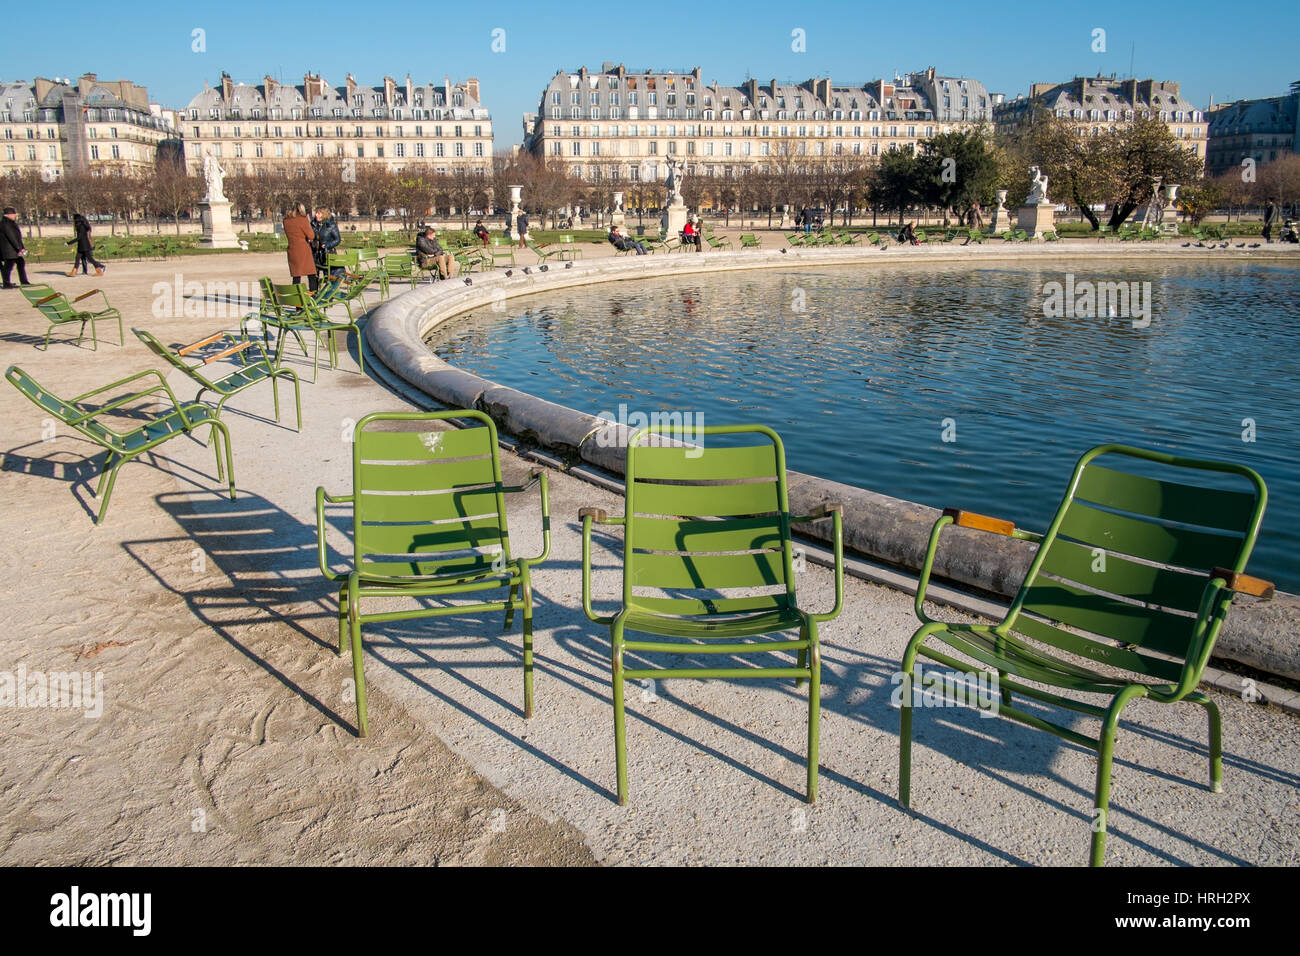 Enjoying the winter sun at grand bassin octogonal at the jardin des stockfoto lizenzfreies bild - Grand bassin de jardin ...